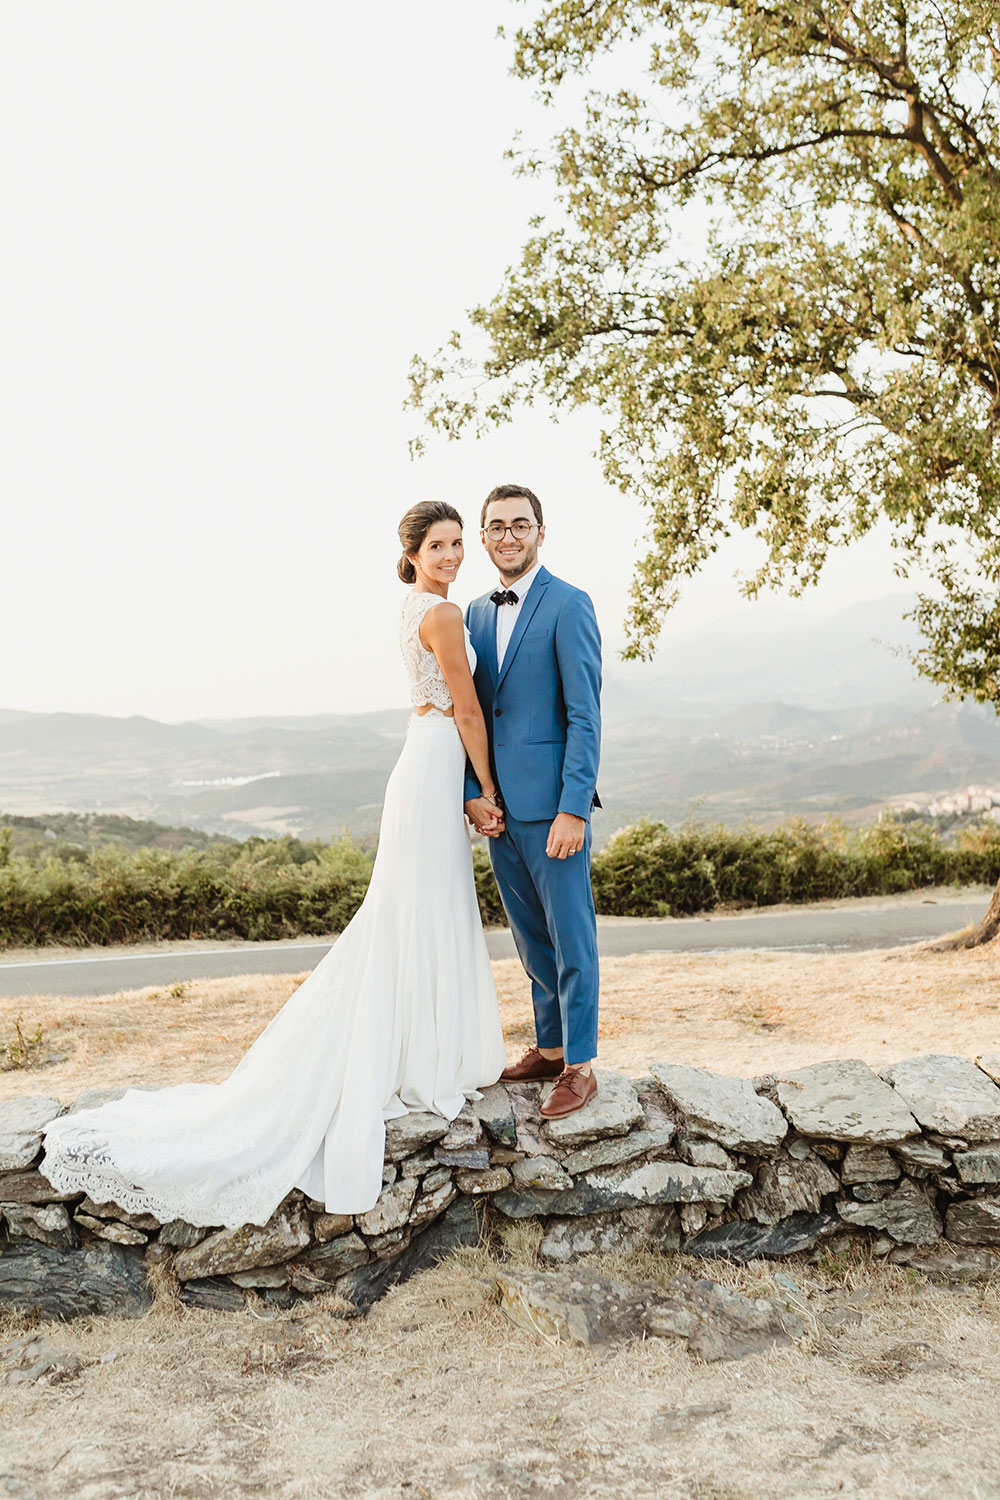 Coline and matthieus wedding weekend in corsica magdalena kernan was behind the lens capturing all the beautiful moments including rehearsal portraits and the morning after beach brunch and we guarantee izmirmasajfo Gallery